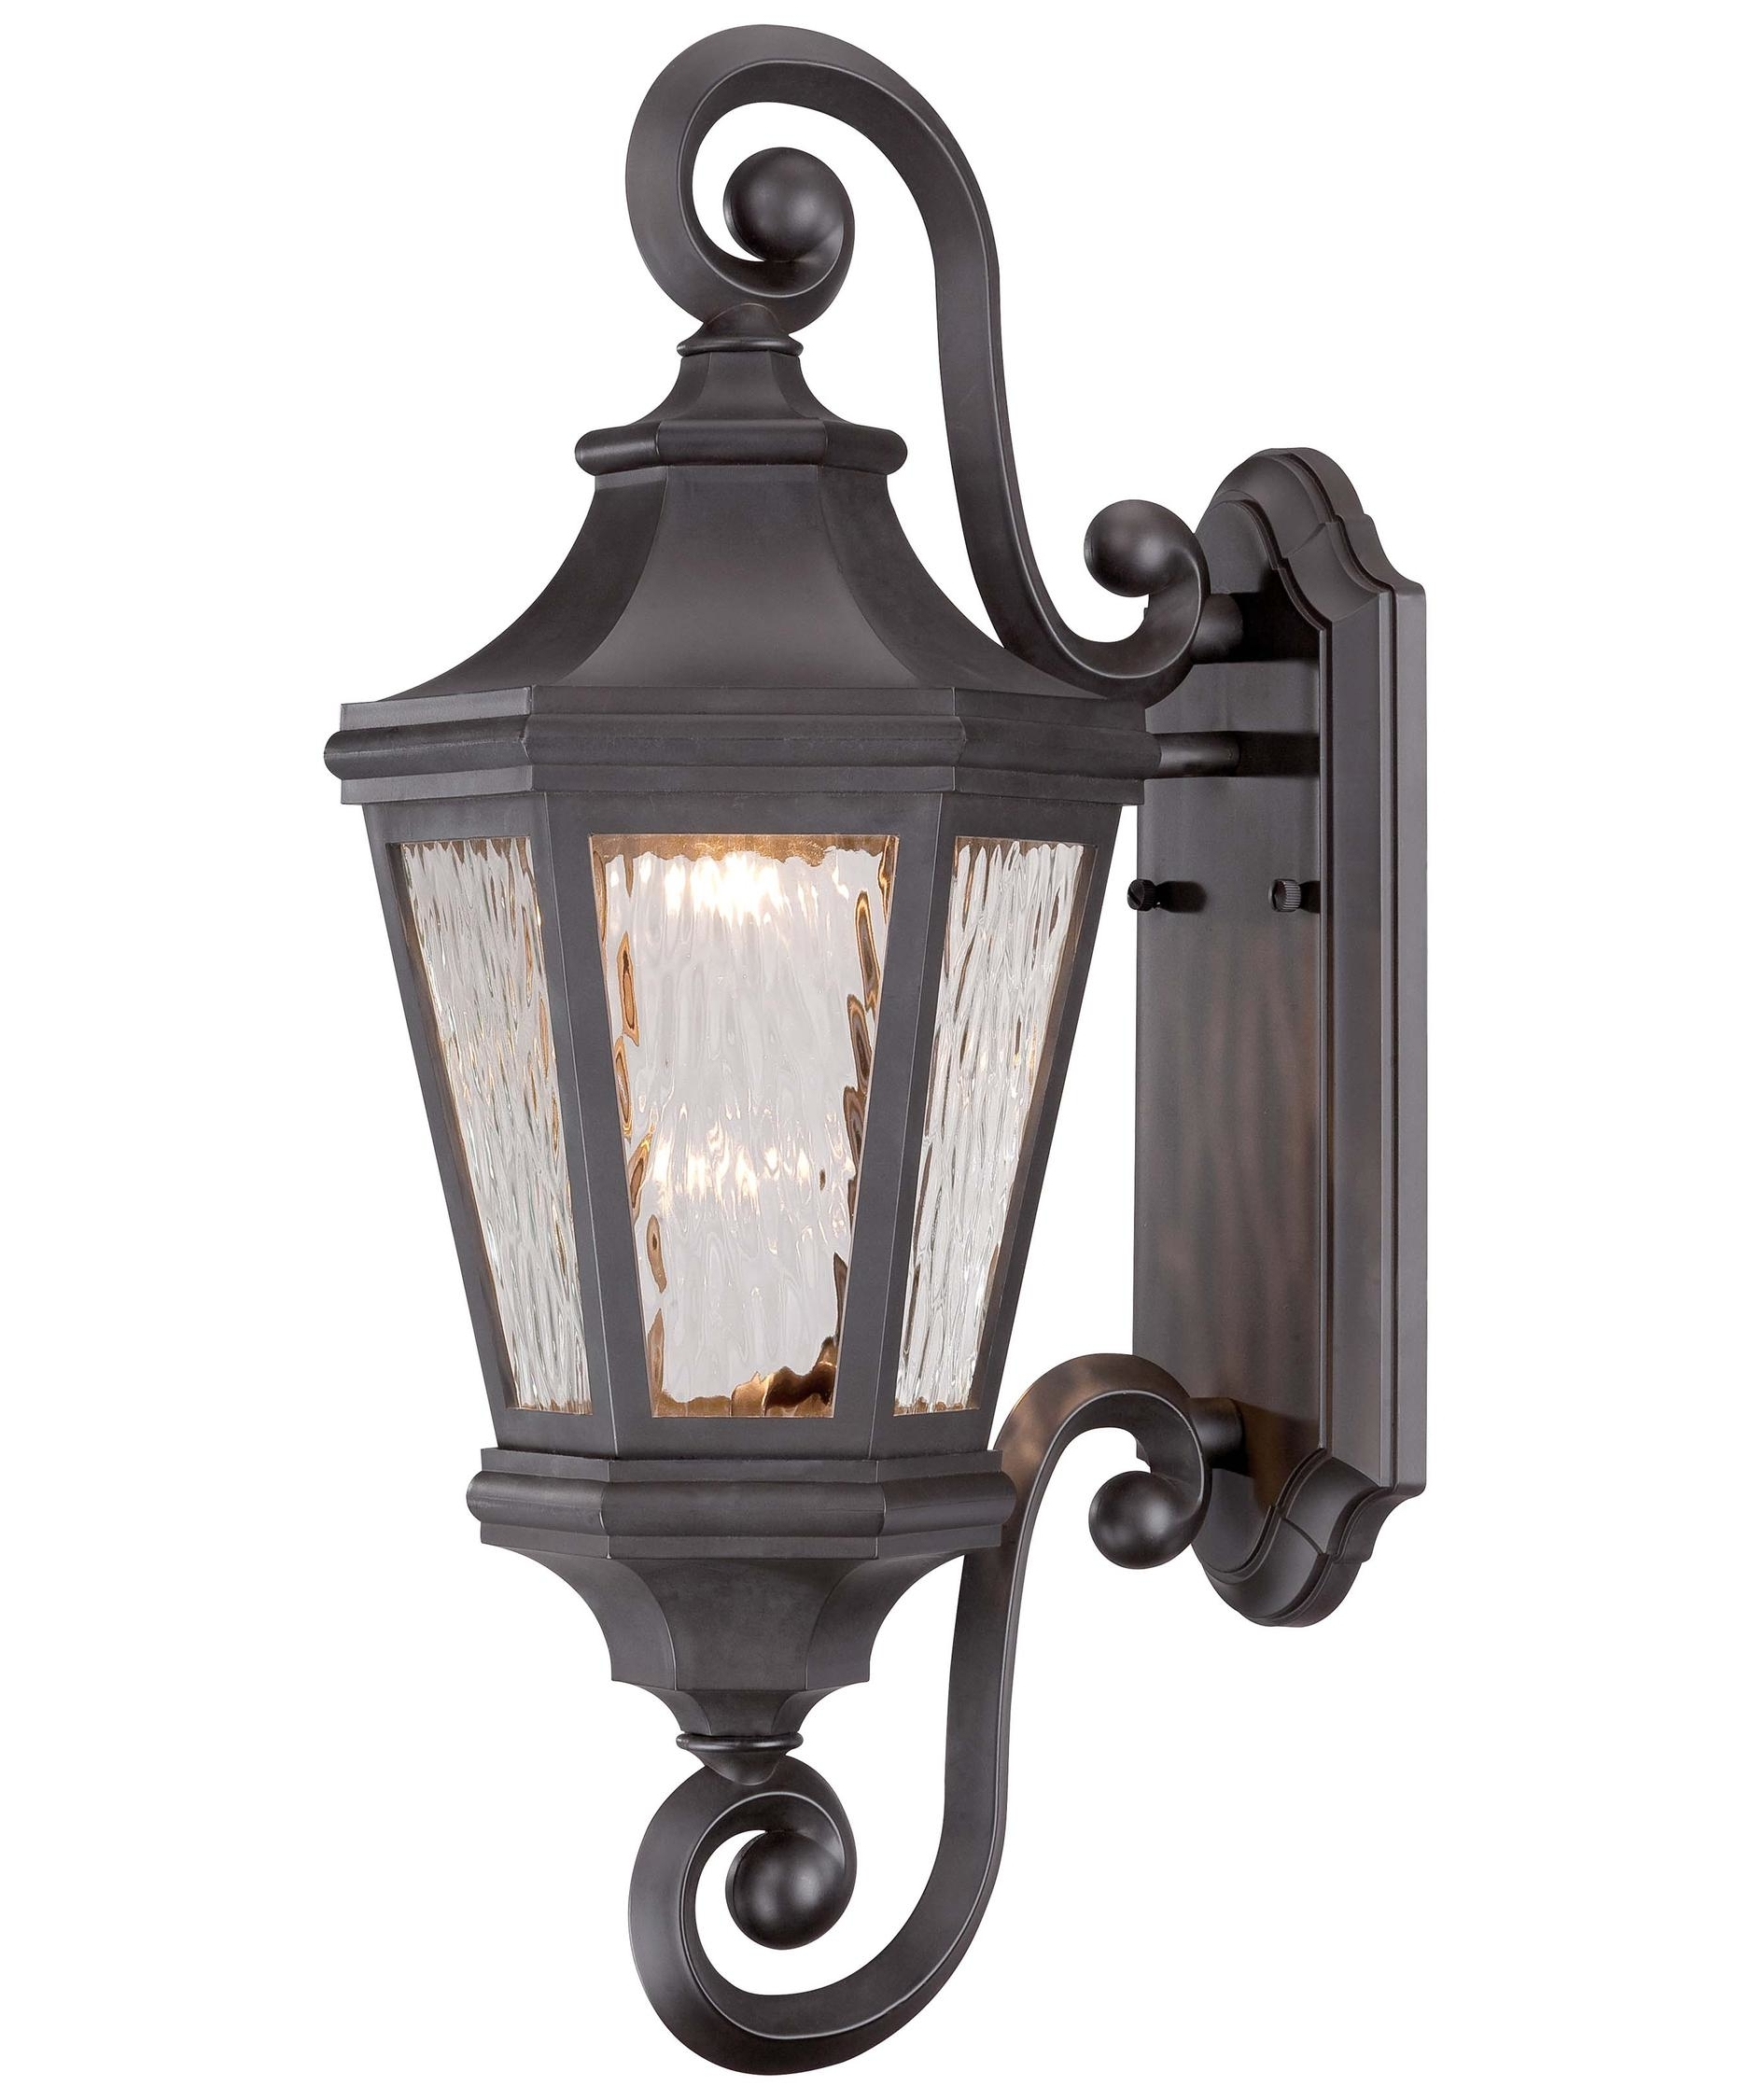 Buy The Brynmar Extra Large Outdoor Wall Sconce Outdoor Fixtures For 2019 Outdoor Wall Lighting At Houzz (Gallery 12 of 20)